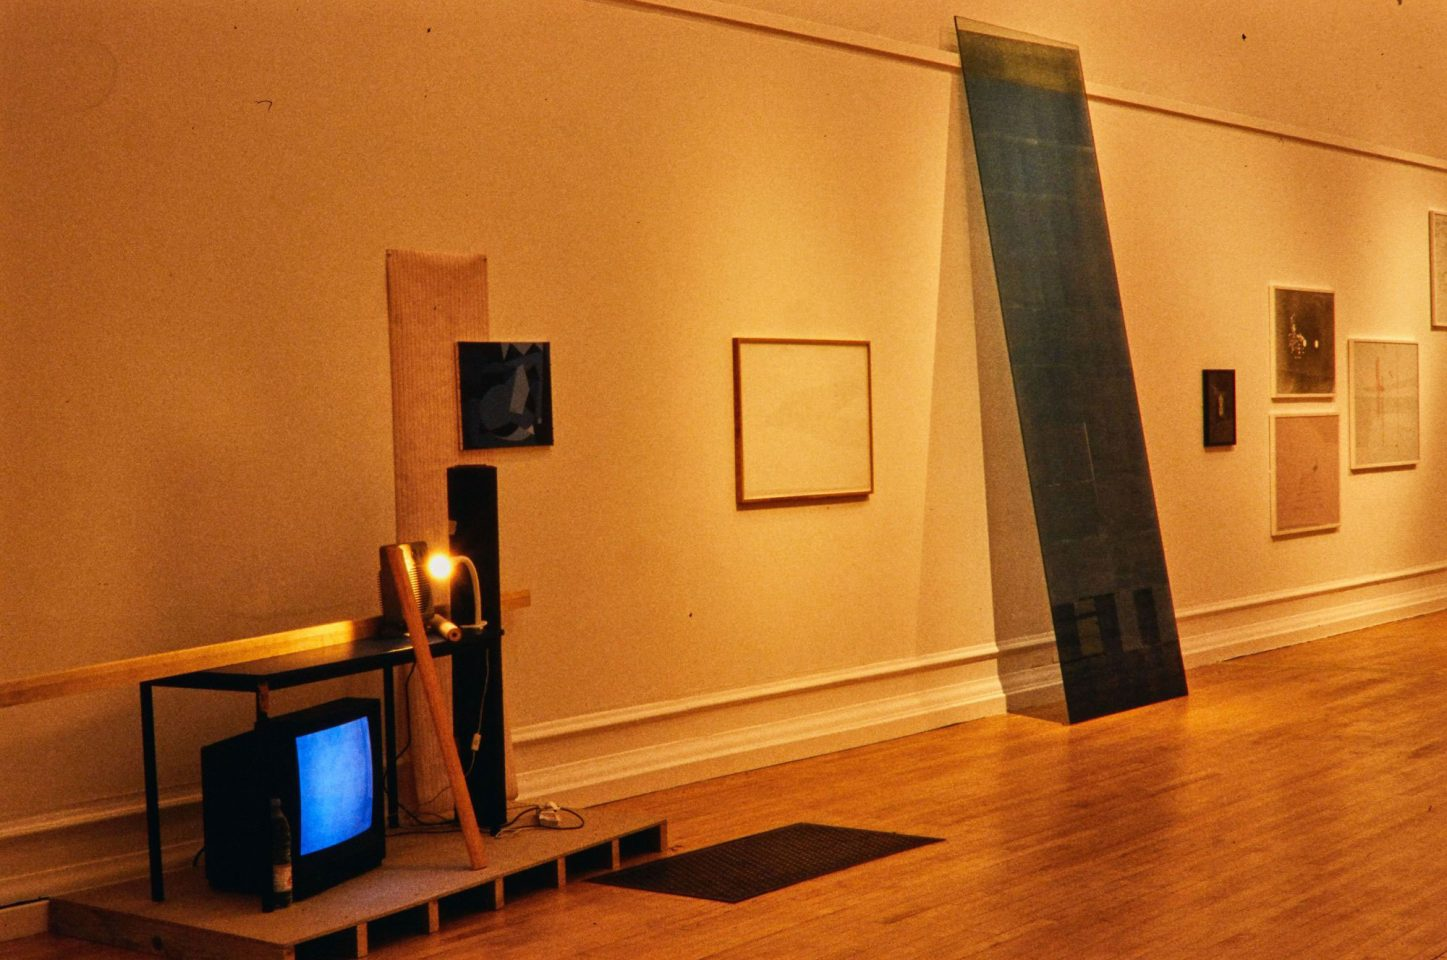 Installation view from the 2004 Showcase Preview.